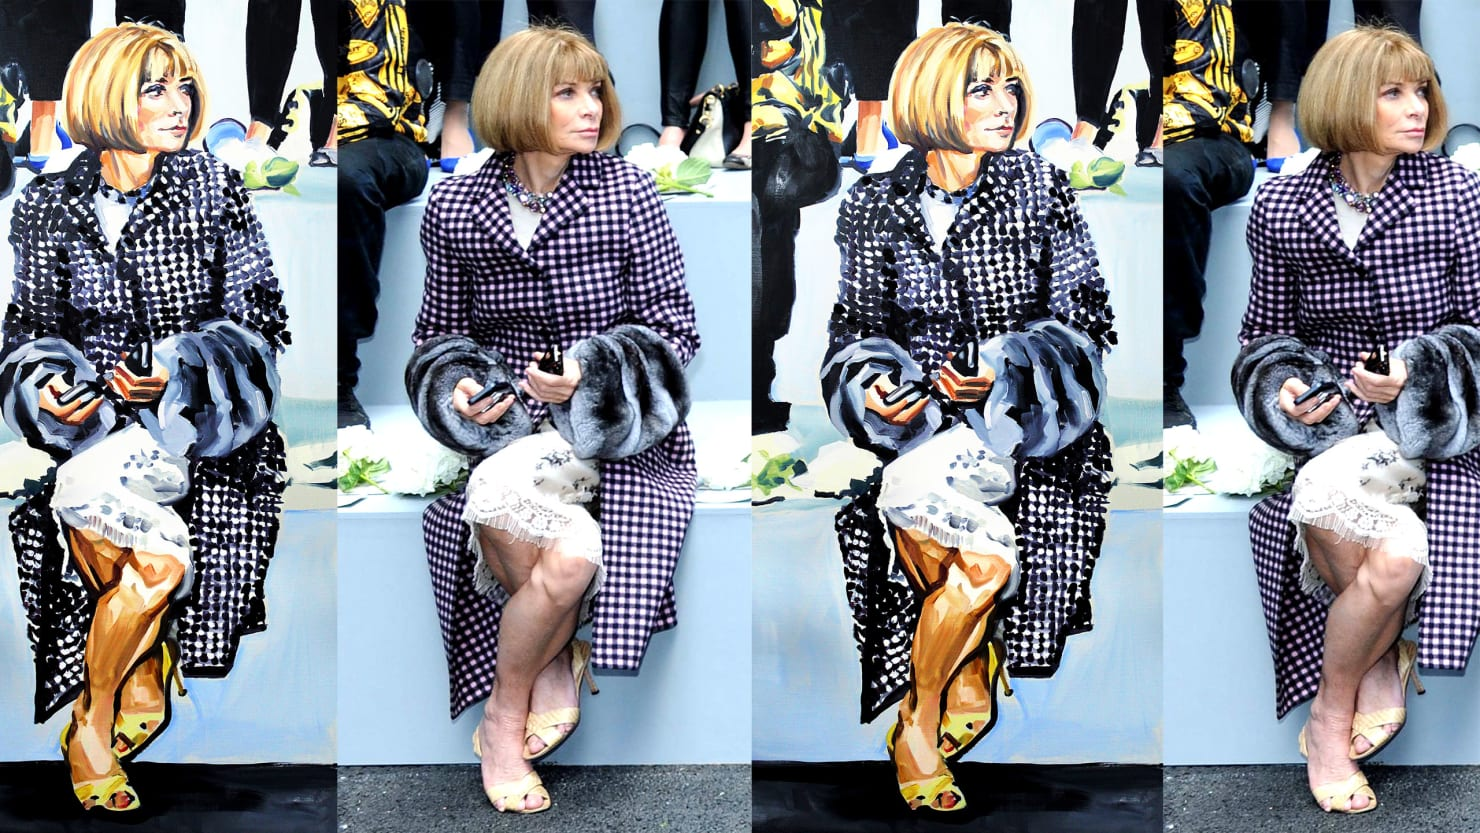 Inside The Exhibit Where Anna Wintour Watches You From Every Angle